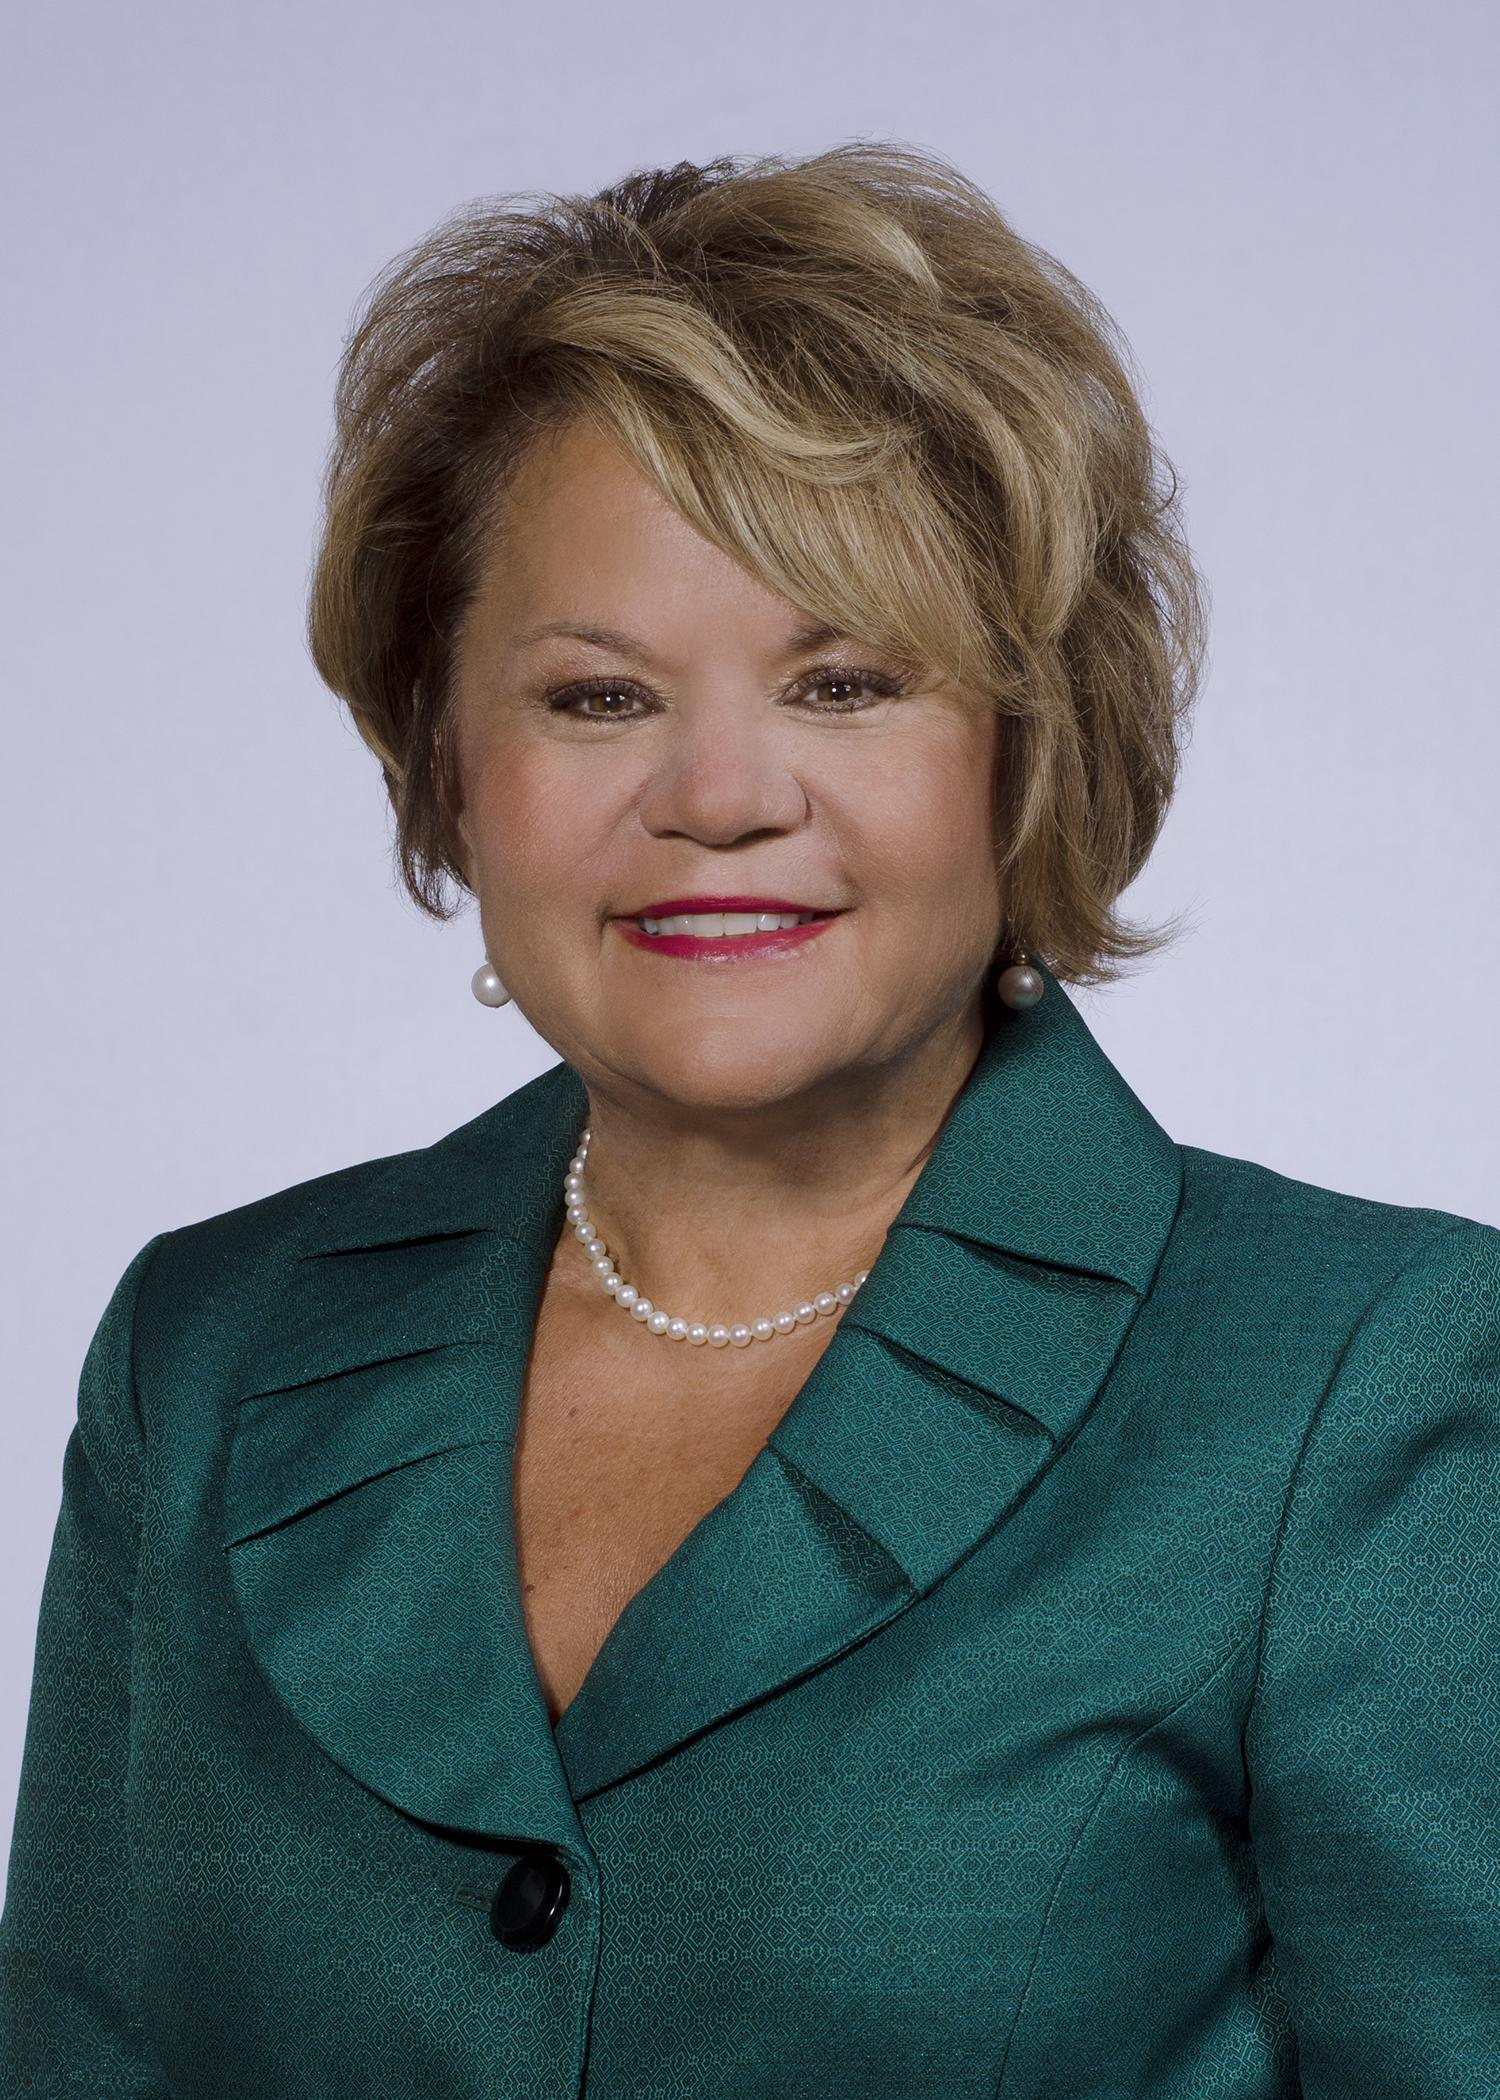 The image is a headshot of Dr. Melody Hackney, Superintendent for Hopewell City Public Schools. Her hair is blonde, she is smiling, and is wearing a green jacket with a scalloped collar.